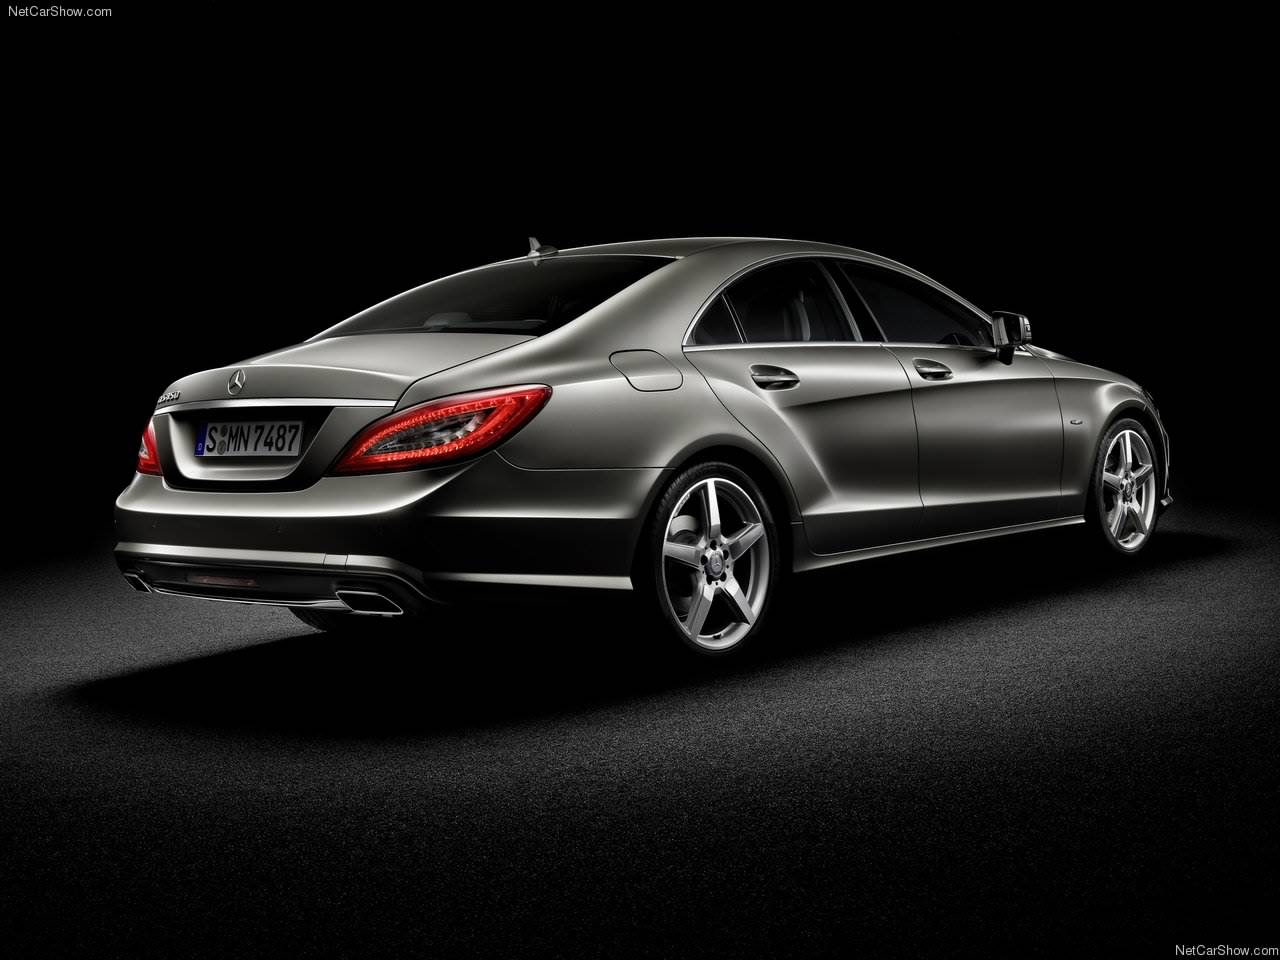 Mercedes-Benz CLS Car